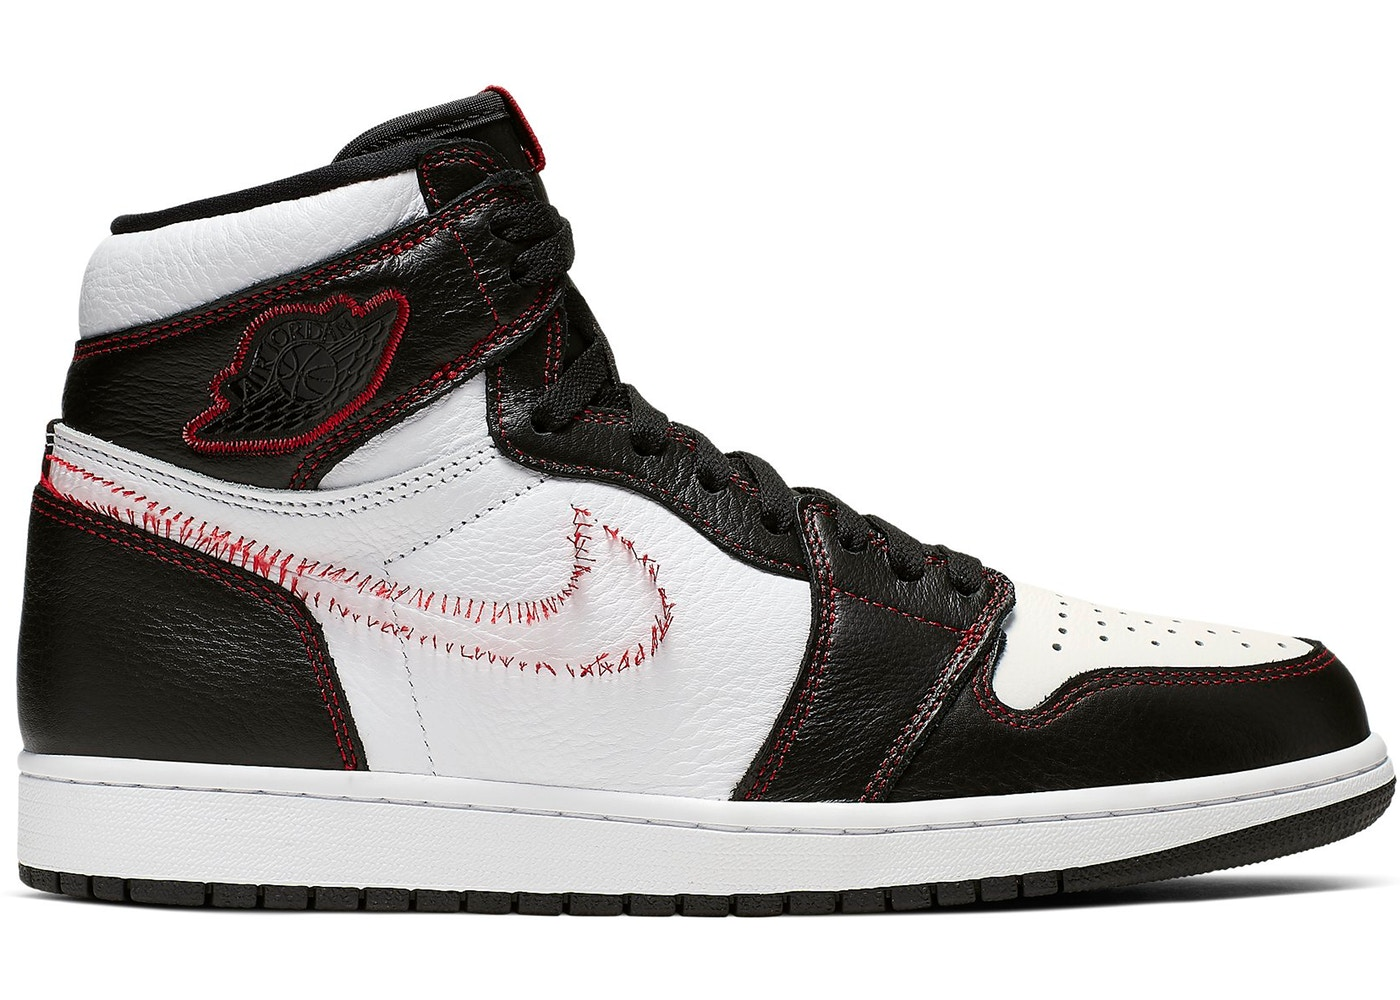 Defiant Red High White Jordan Retro 1 Black Gym 8v0mnwON